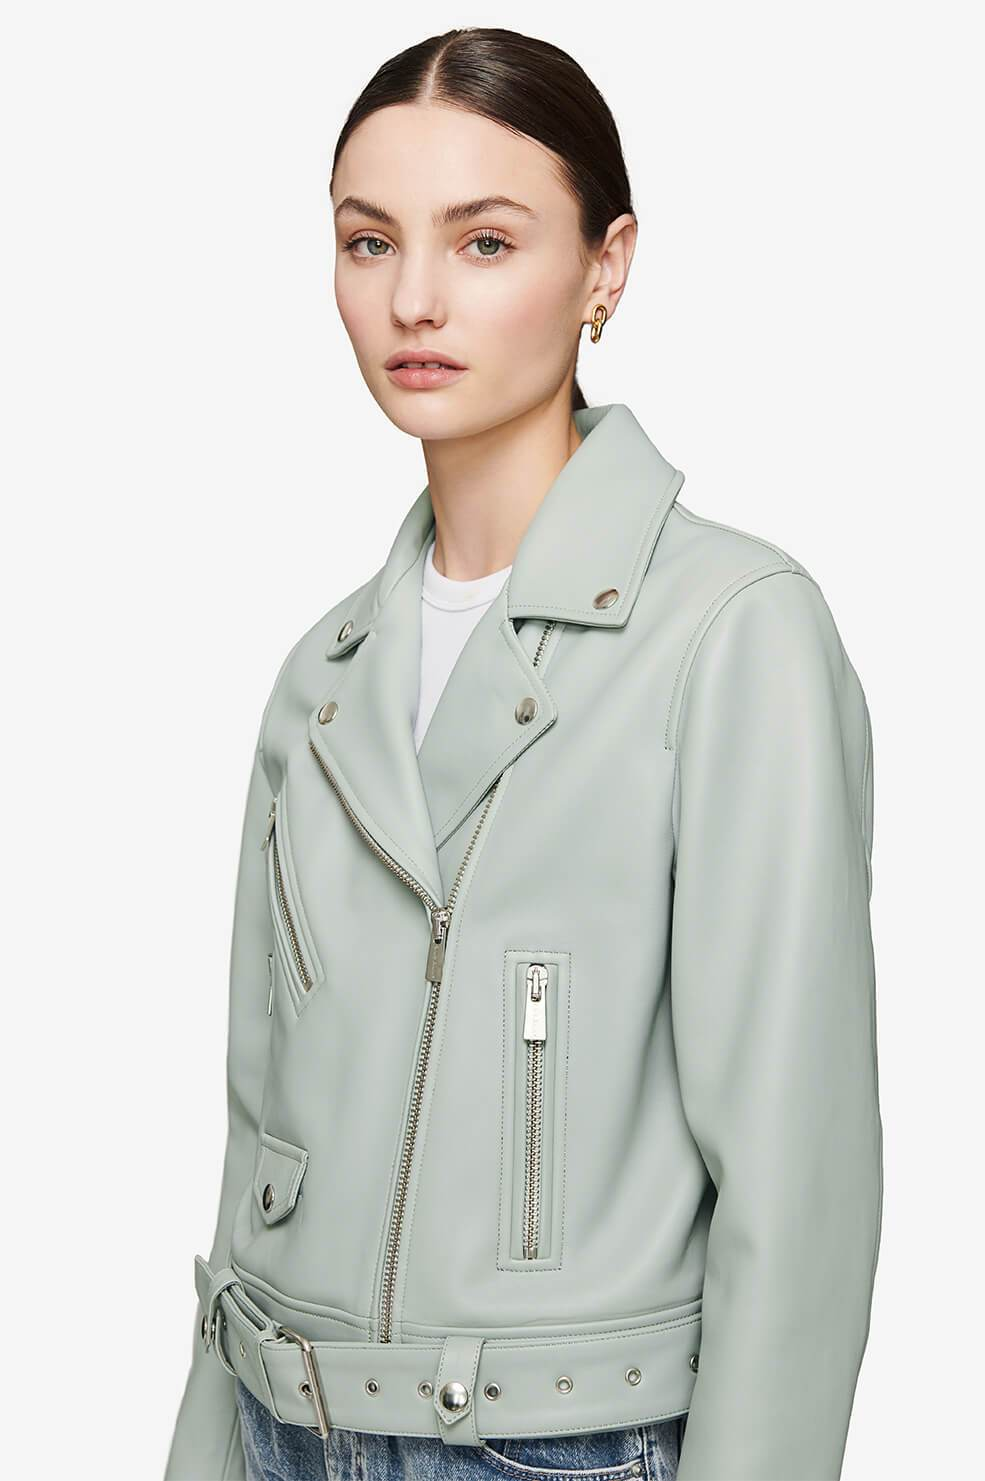 Benjamin Moto Jacket - Dusty Mint